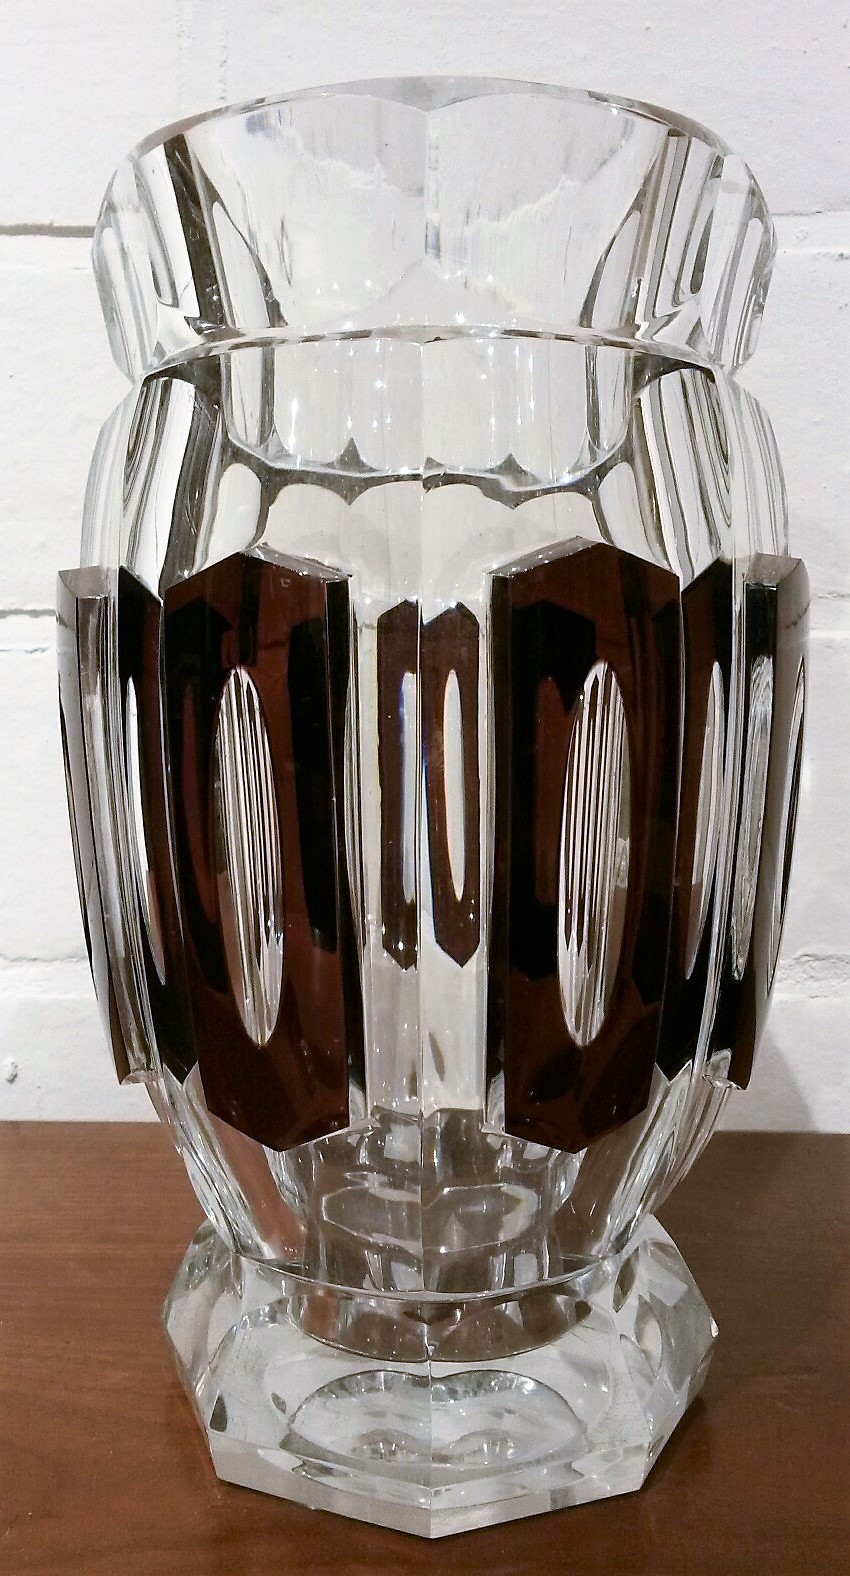 st louis crystal vase of auction catalog 25 february 2017 1 maison jules with regard to val saint lambert art deco crystal vase